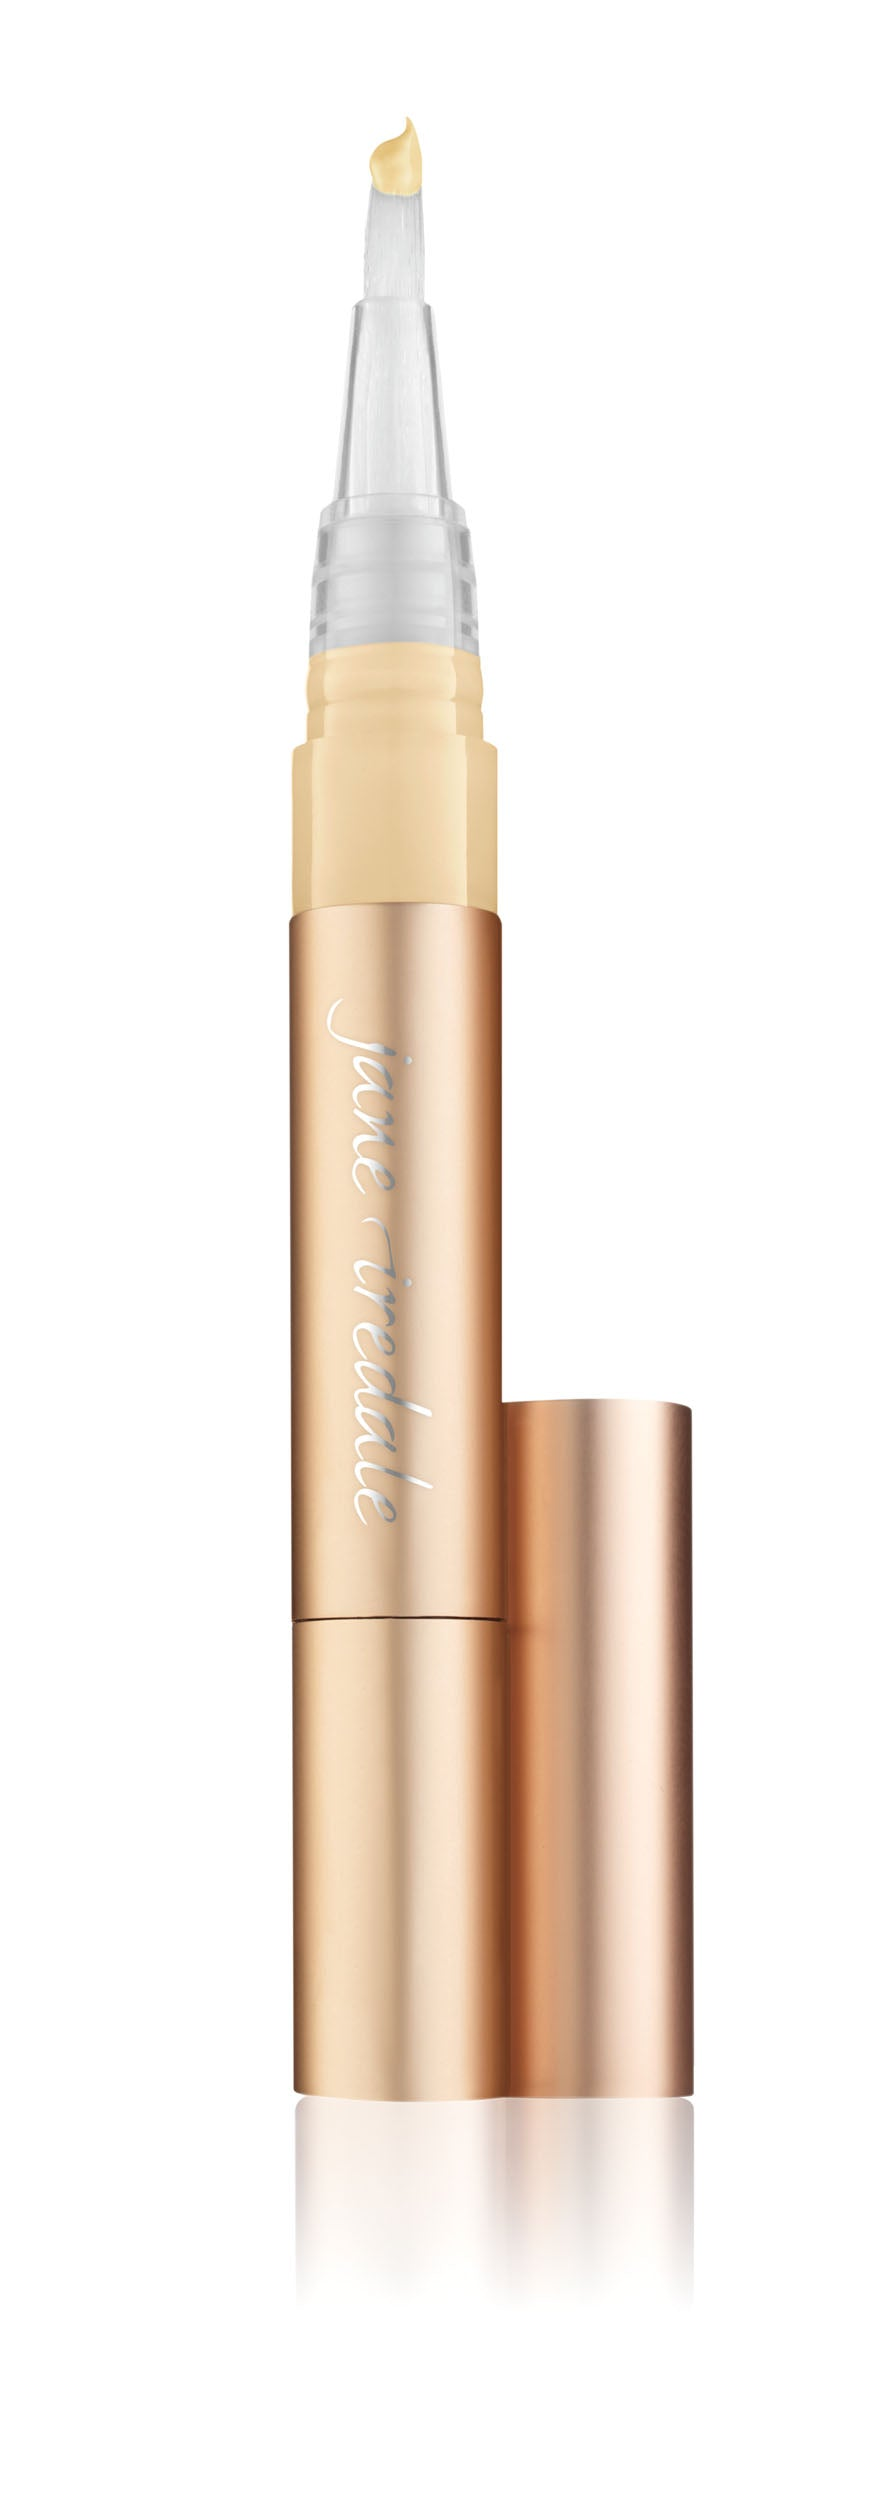 JI Active Light Concealer - 2g